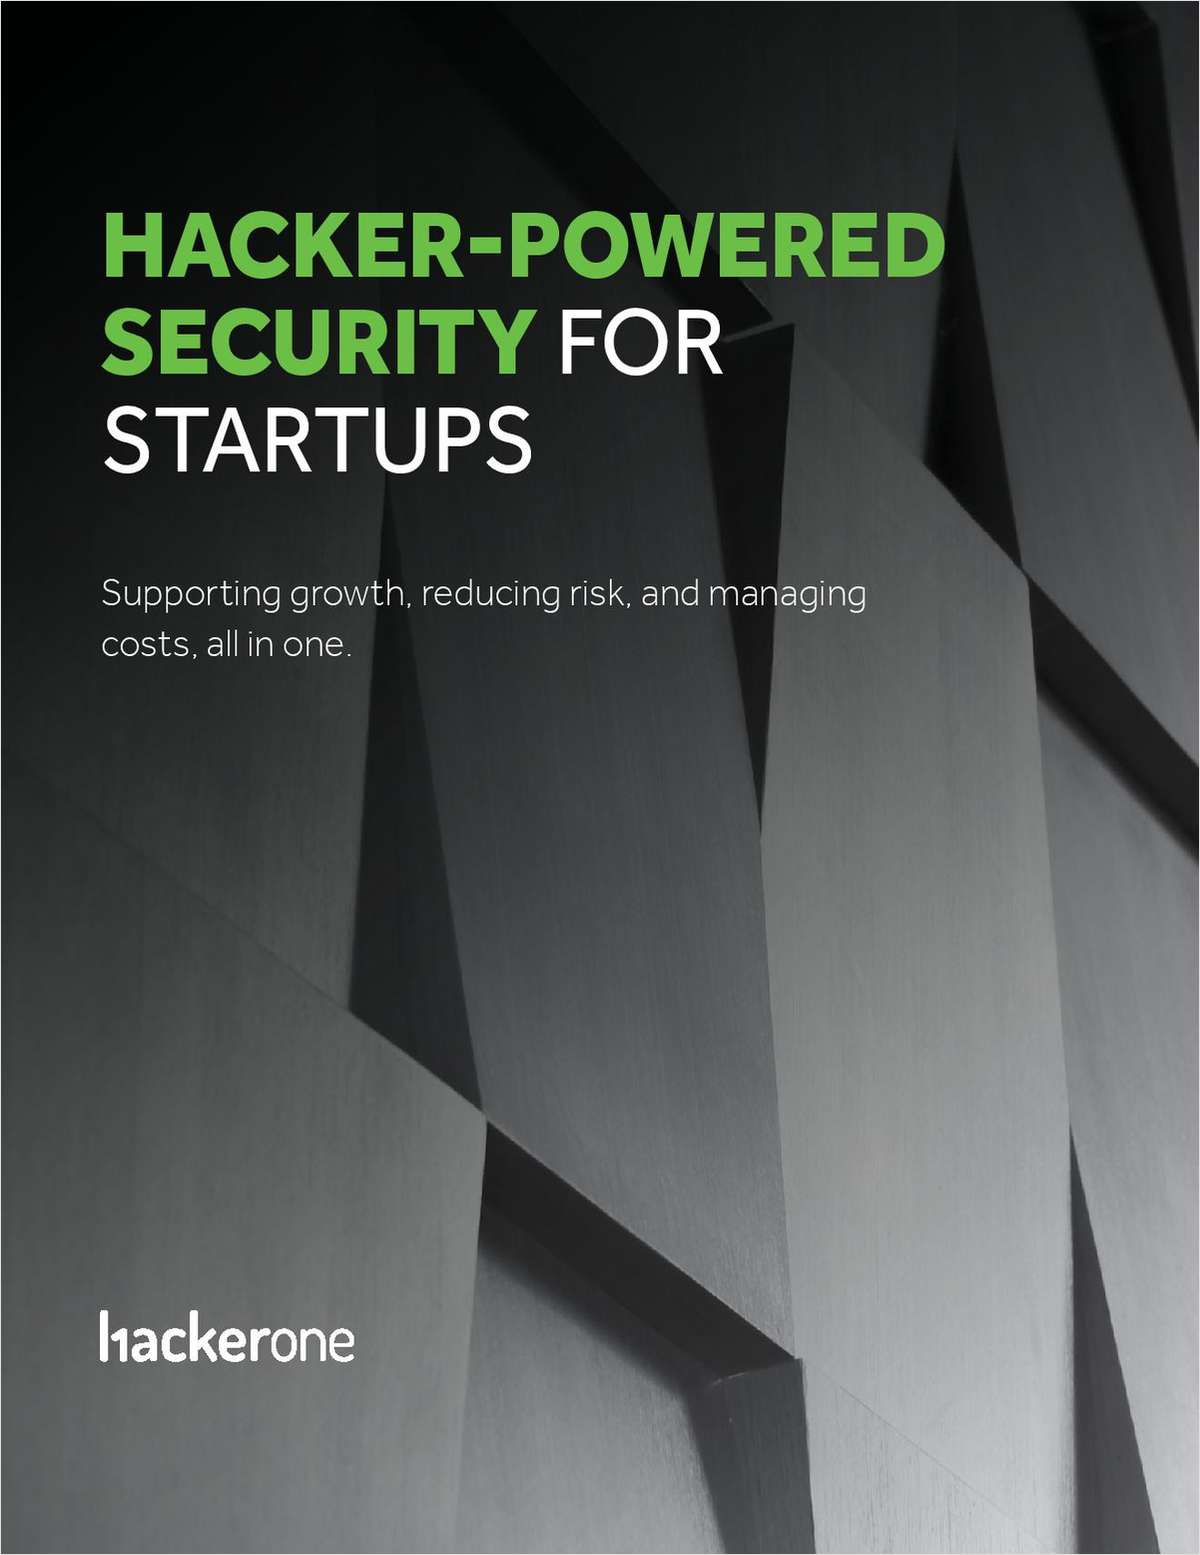 Hacker-Powered Security for Startups